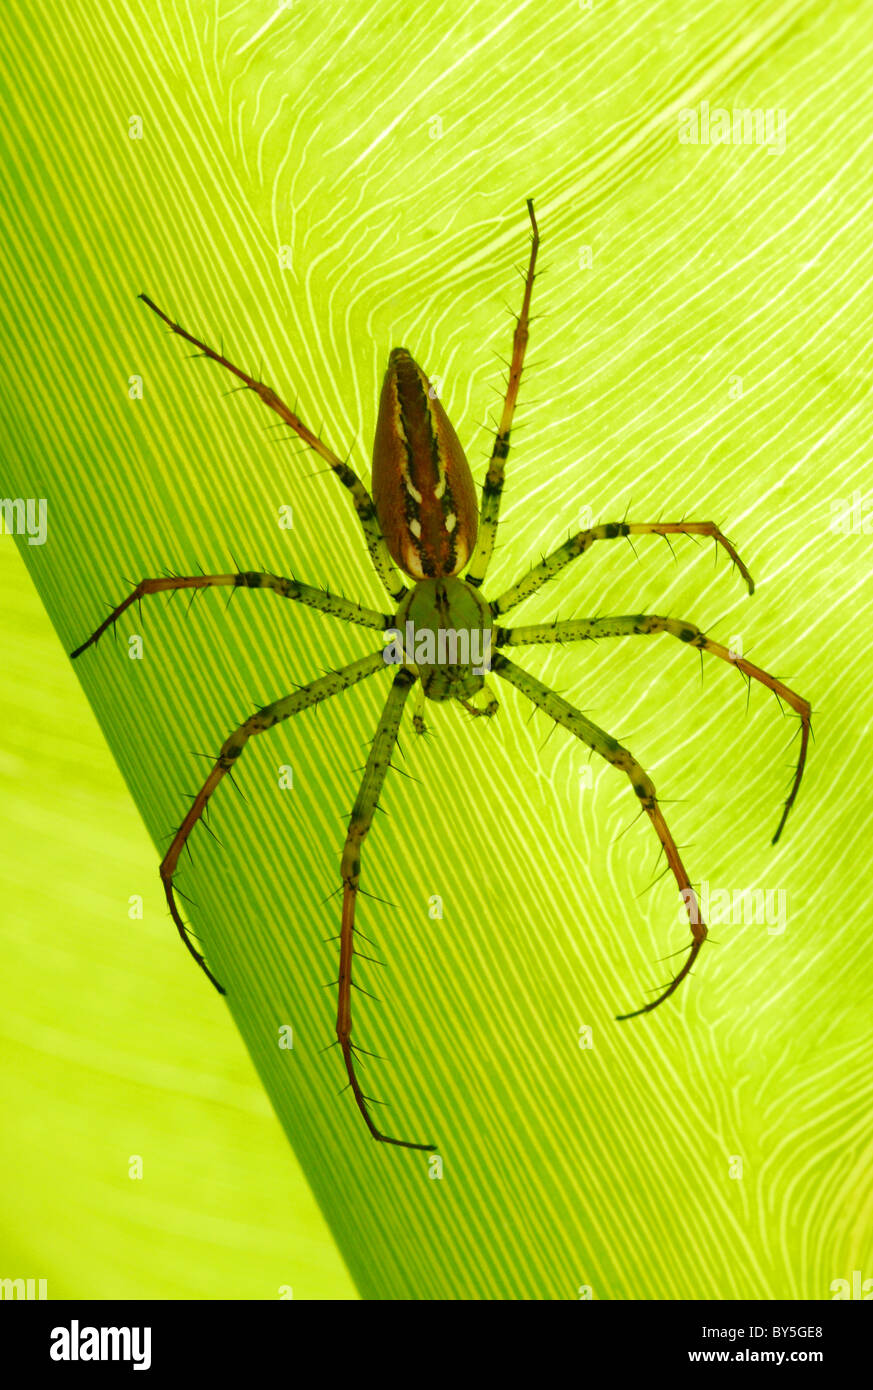 Madagascar Lynx Spider (Peucetia madagascariensis) resting on a leaf in Antsirabe, central Madagascar. August 2010. - Stock Image